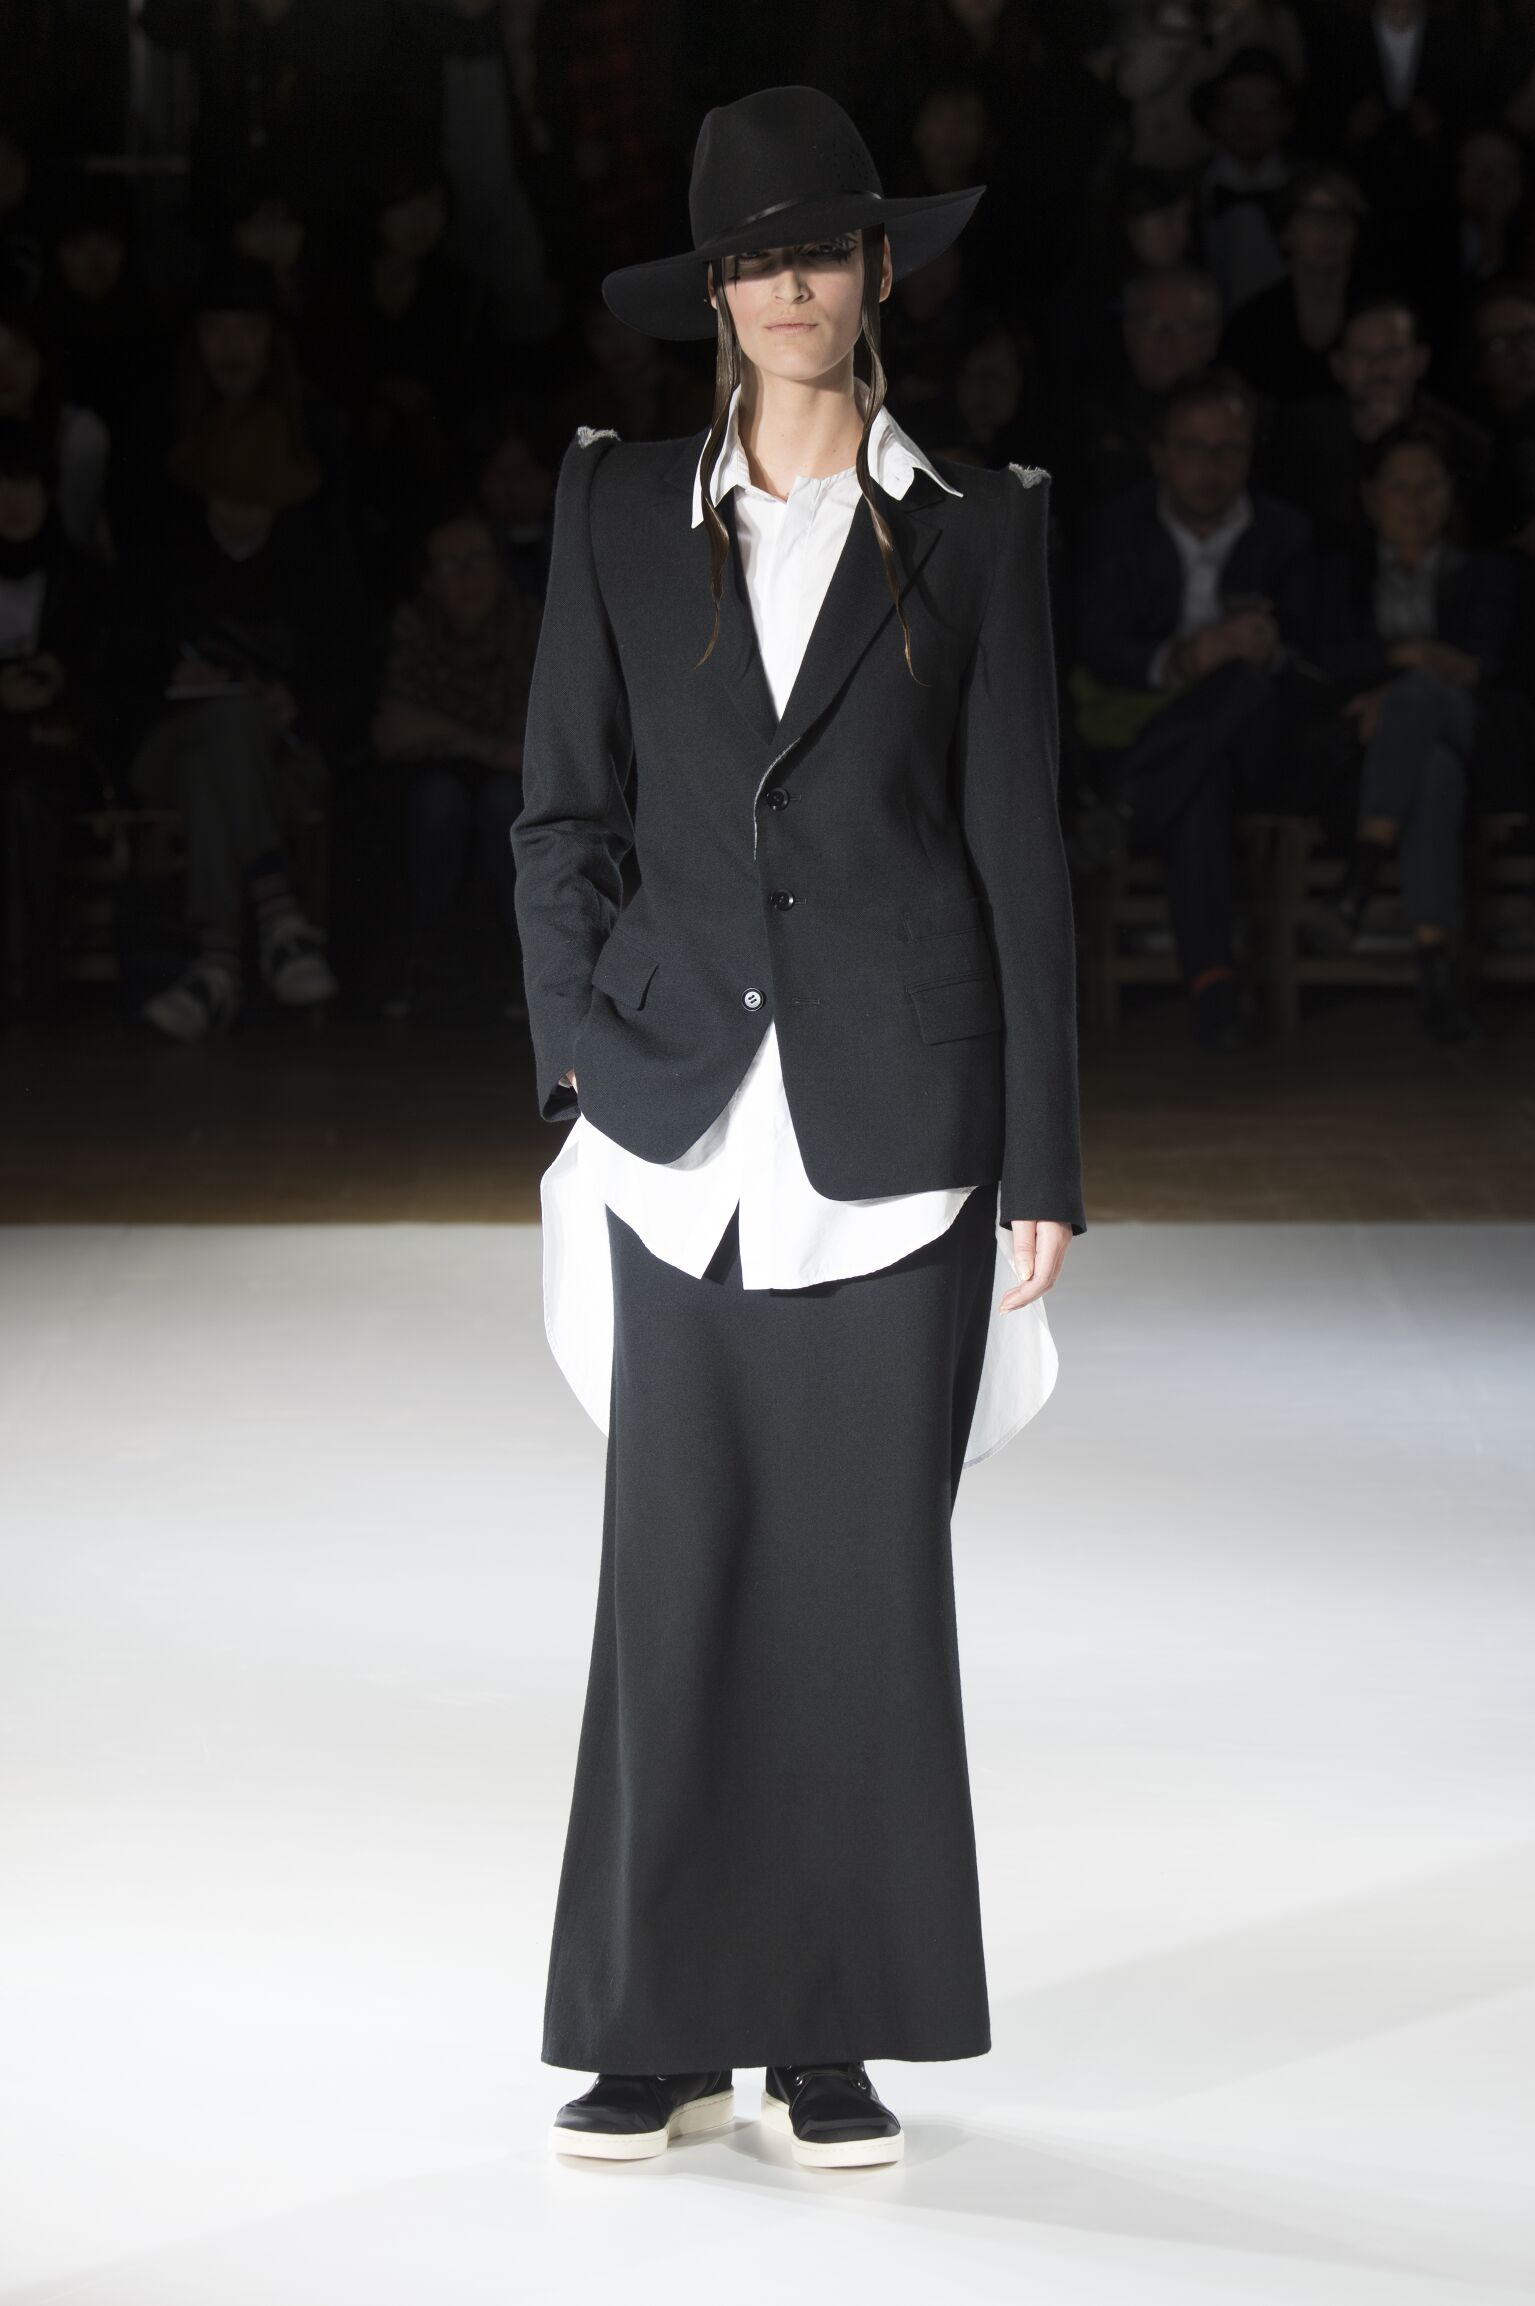 Fashion Women Models Yohji Yamamoto Collection Catwalk